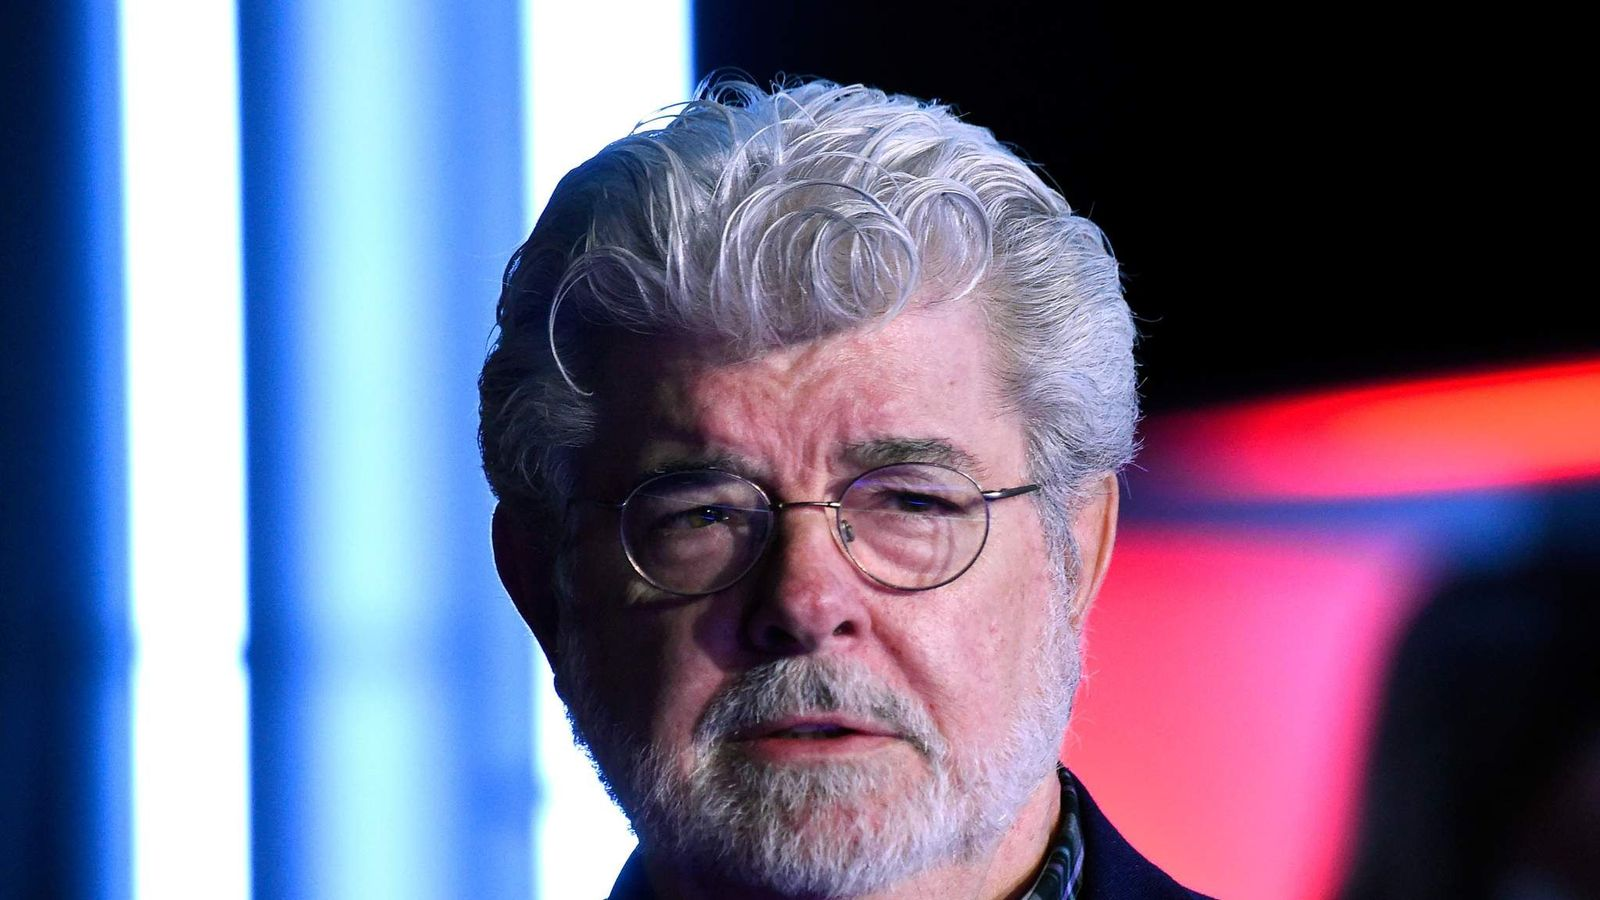 George Lucas Sorry For 'White Slavers' Comment